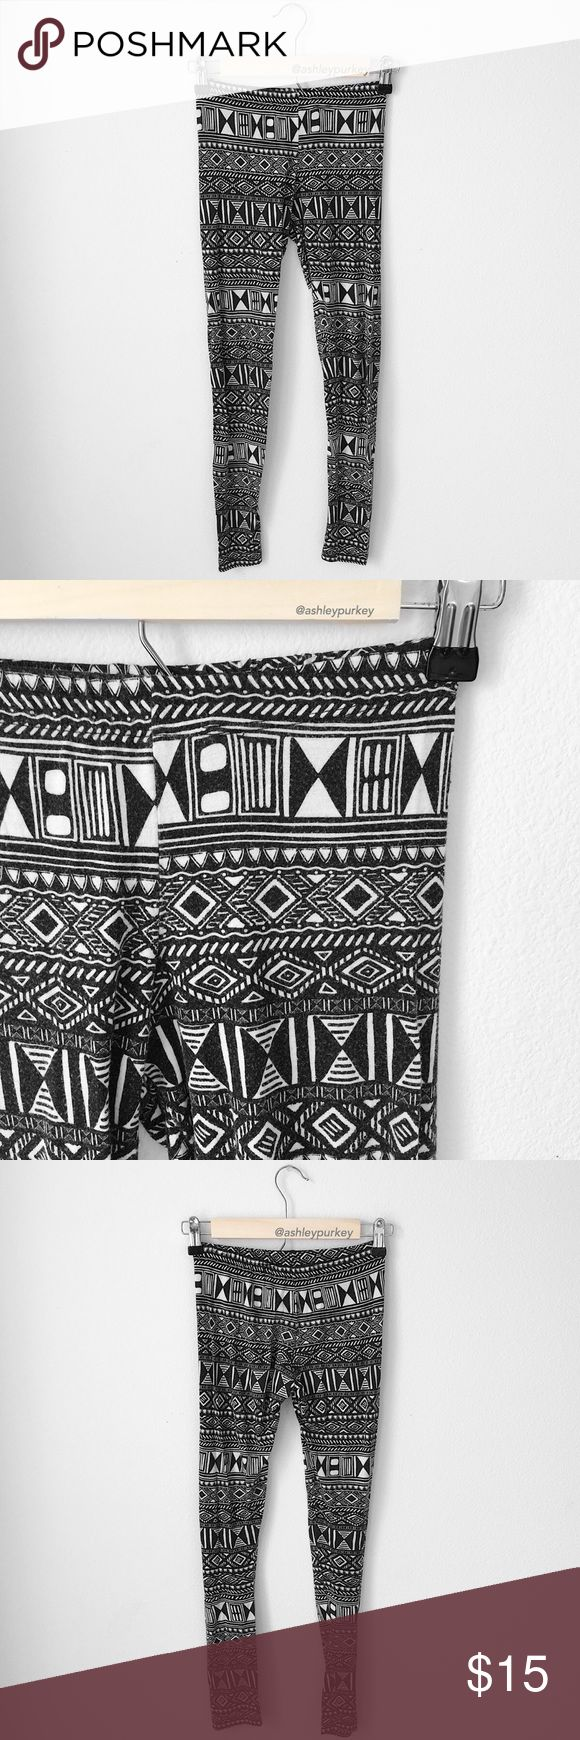 white and black aztec print leggings •size: S  •worn but no flaws  •no trades  ⚠️ if this item does not fit you CANNOT return it - poshmark policy Nollie Pants Leggings